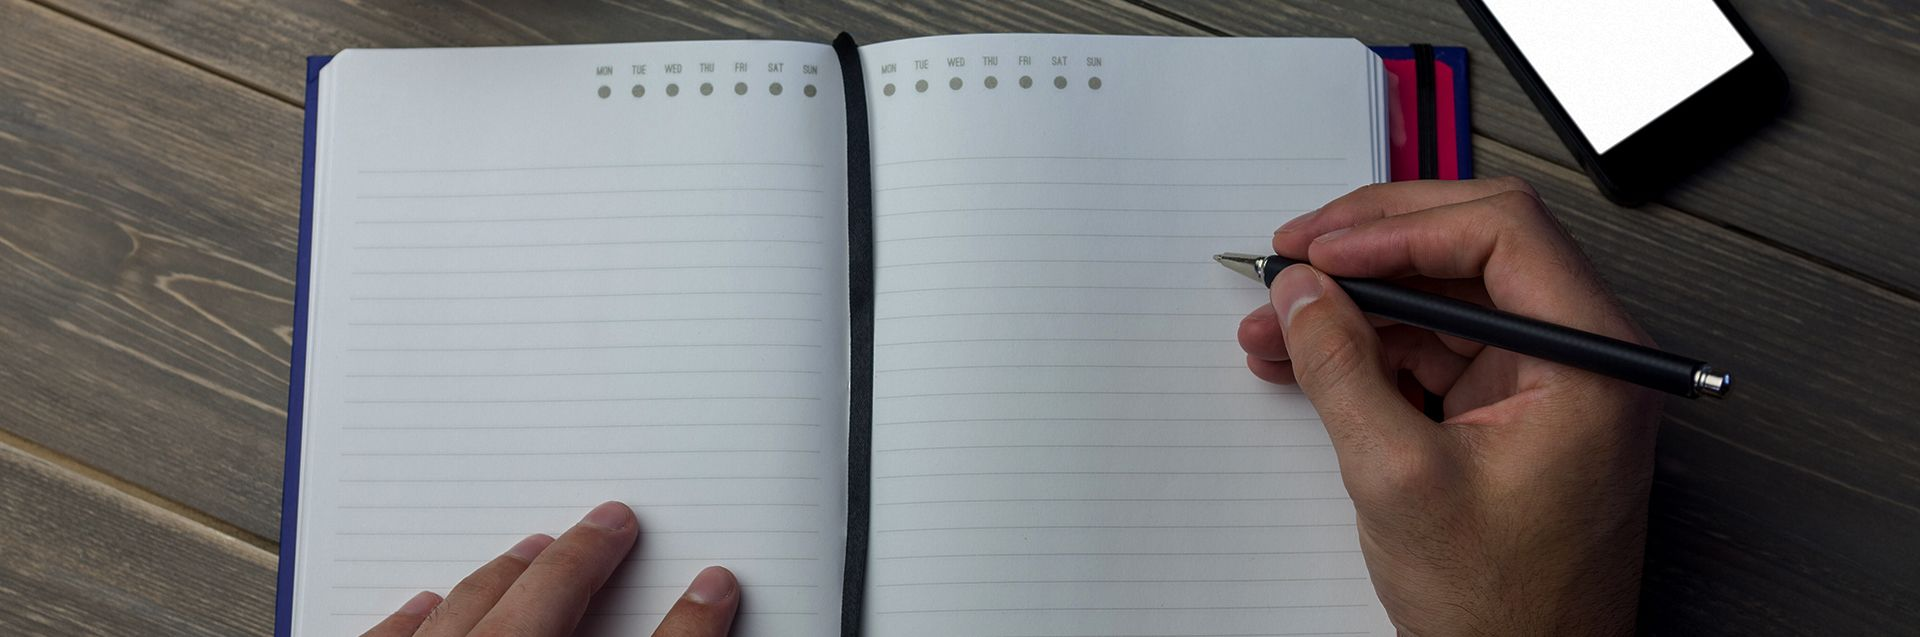 Person writing on a diary at the desk